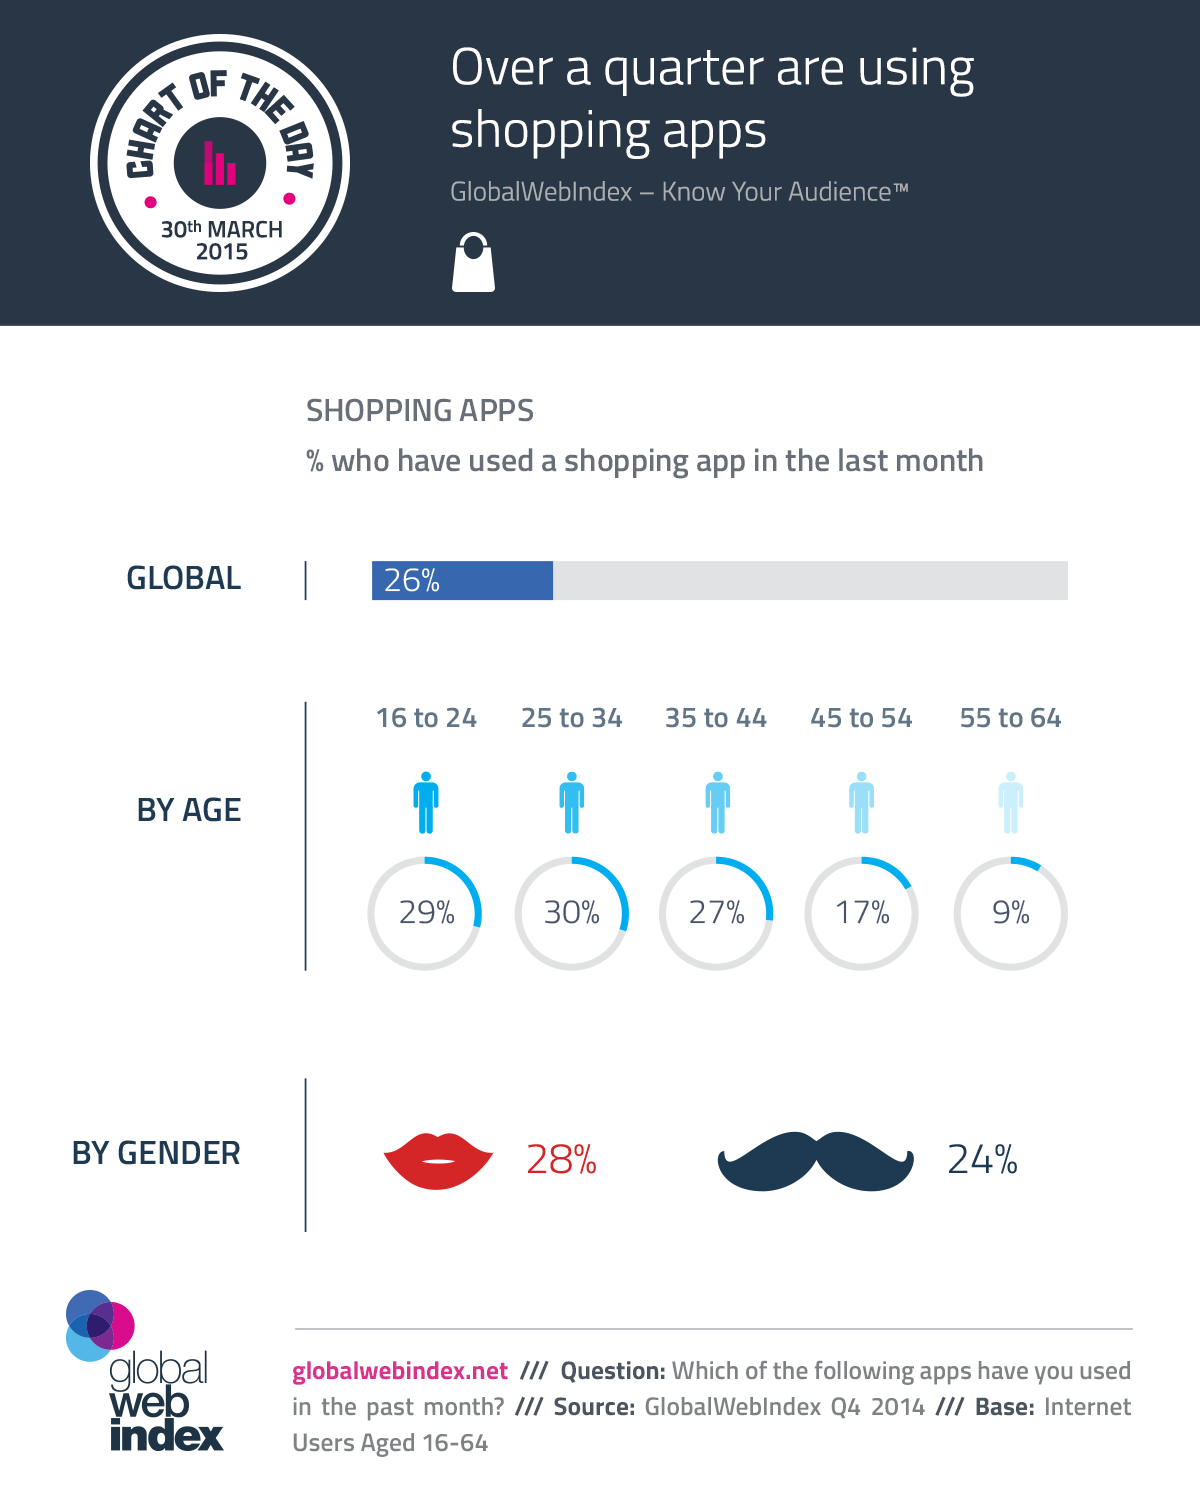 30th-March-2015-Over-a-quarter-are-using-shopping-apps